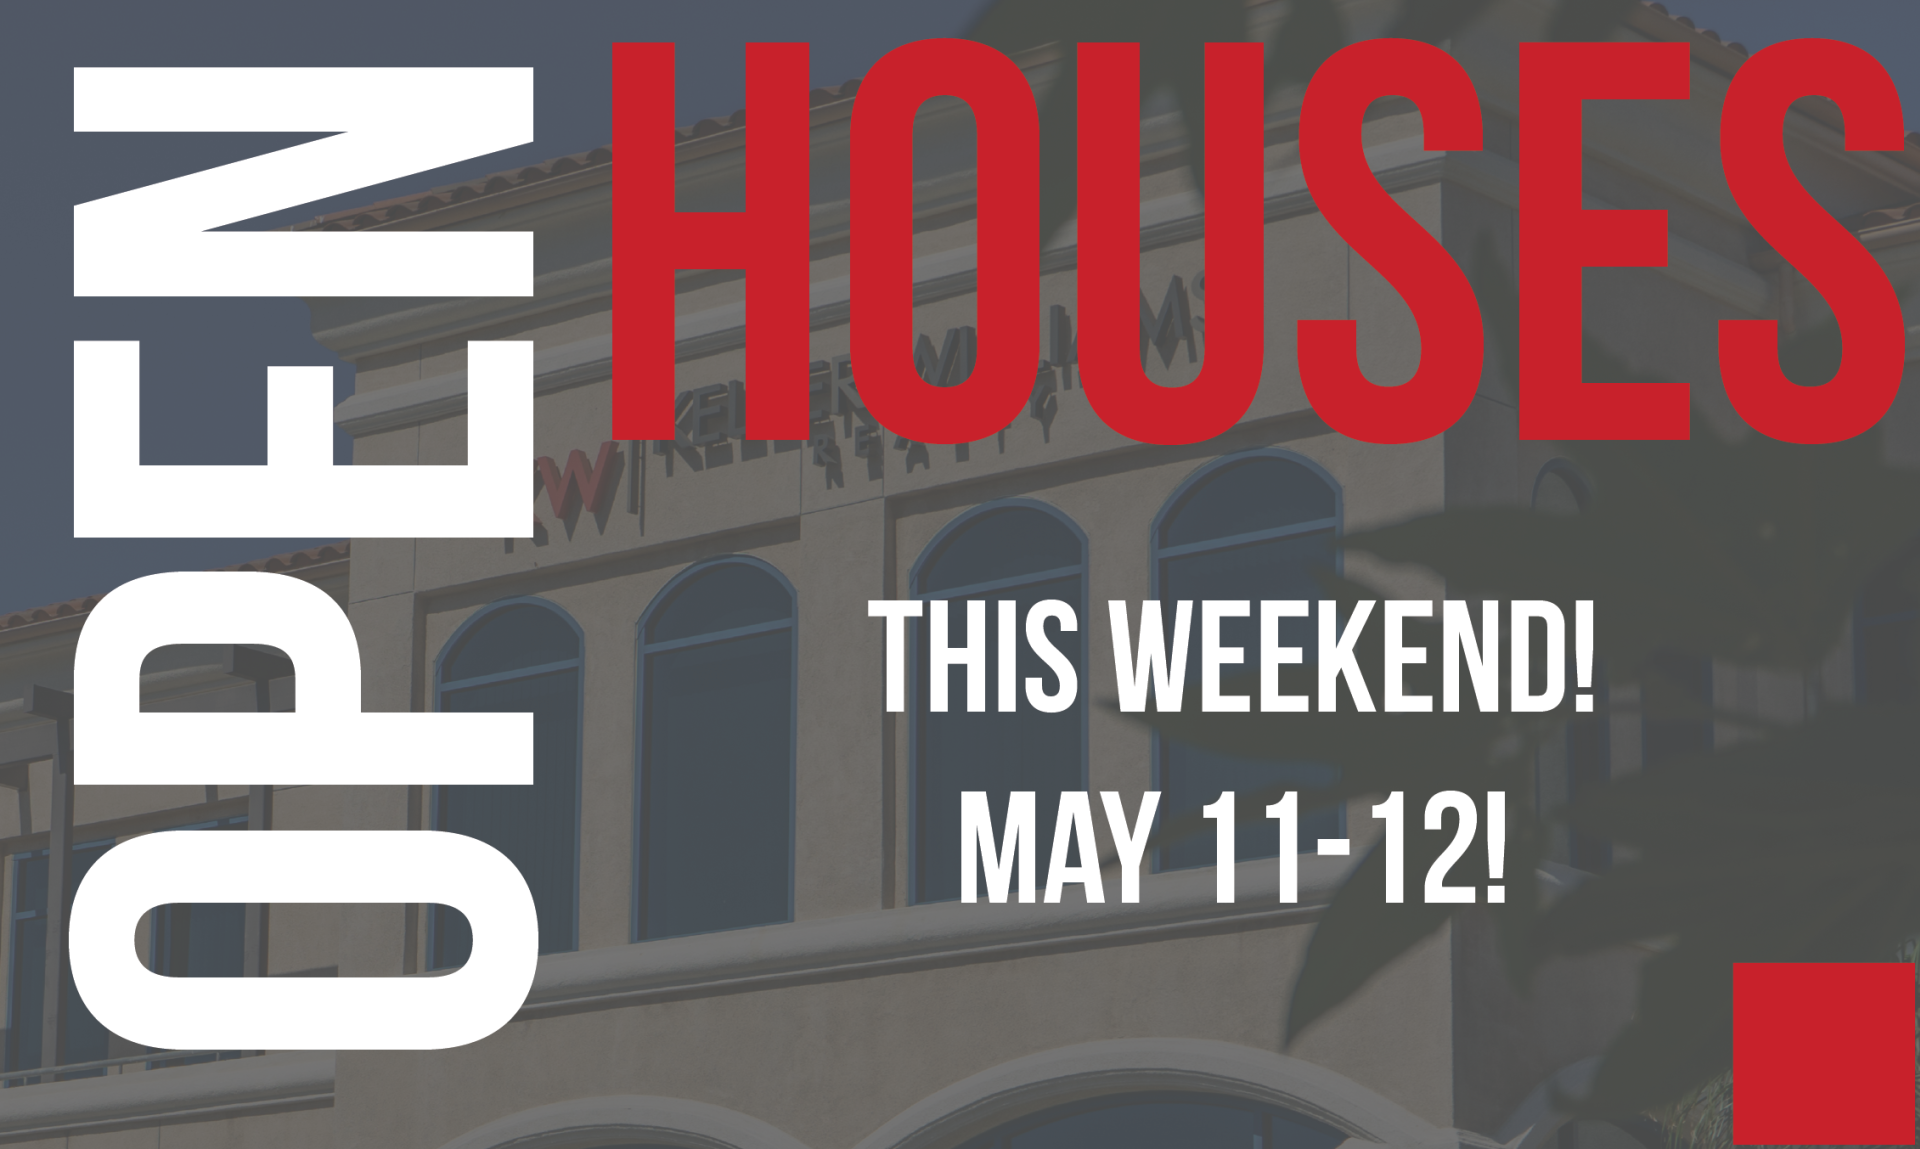 Open Houses This Weekend! May 11-12